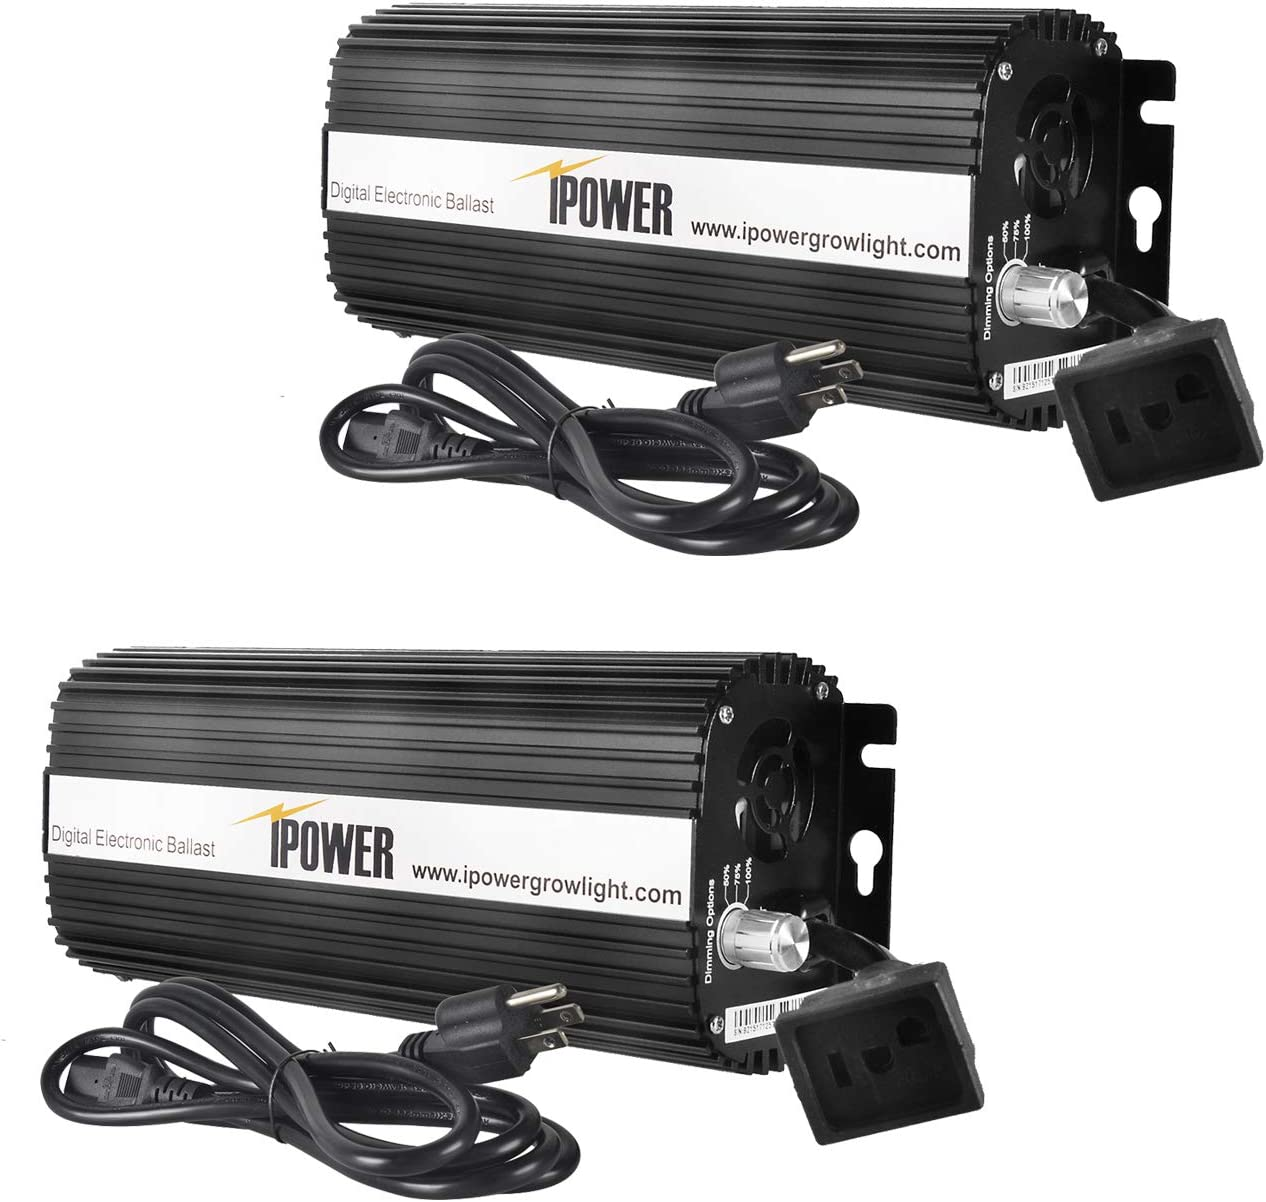 iPower Seasonal Wrap Introduction GLBLST400DX2 2 Pack Horticulture Dimmabl Free shipping anywhere in the nation 400 Digital Watt